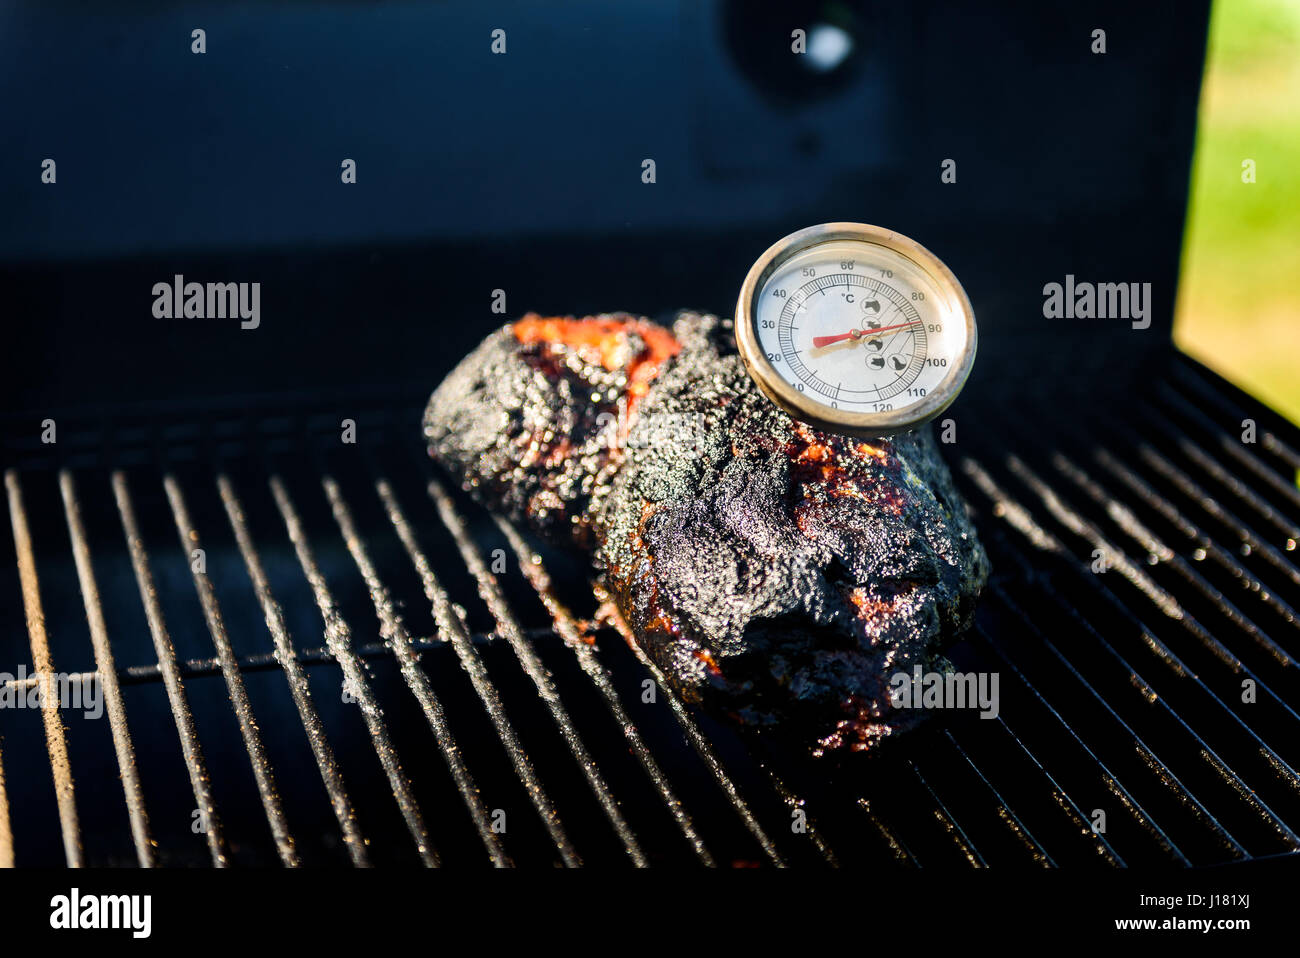 Family Backyard Barbecue   BBQ Picnic. Checking The Correct Temperature  With Meat Thermometer